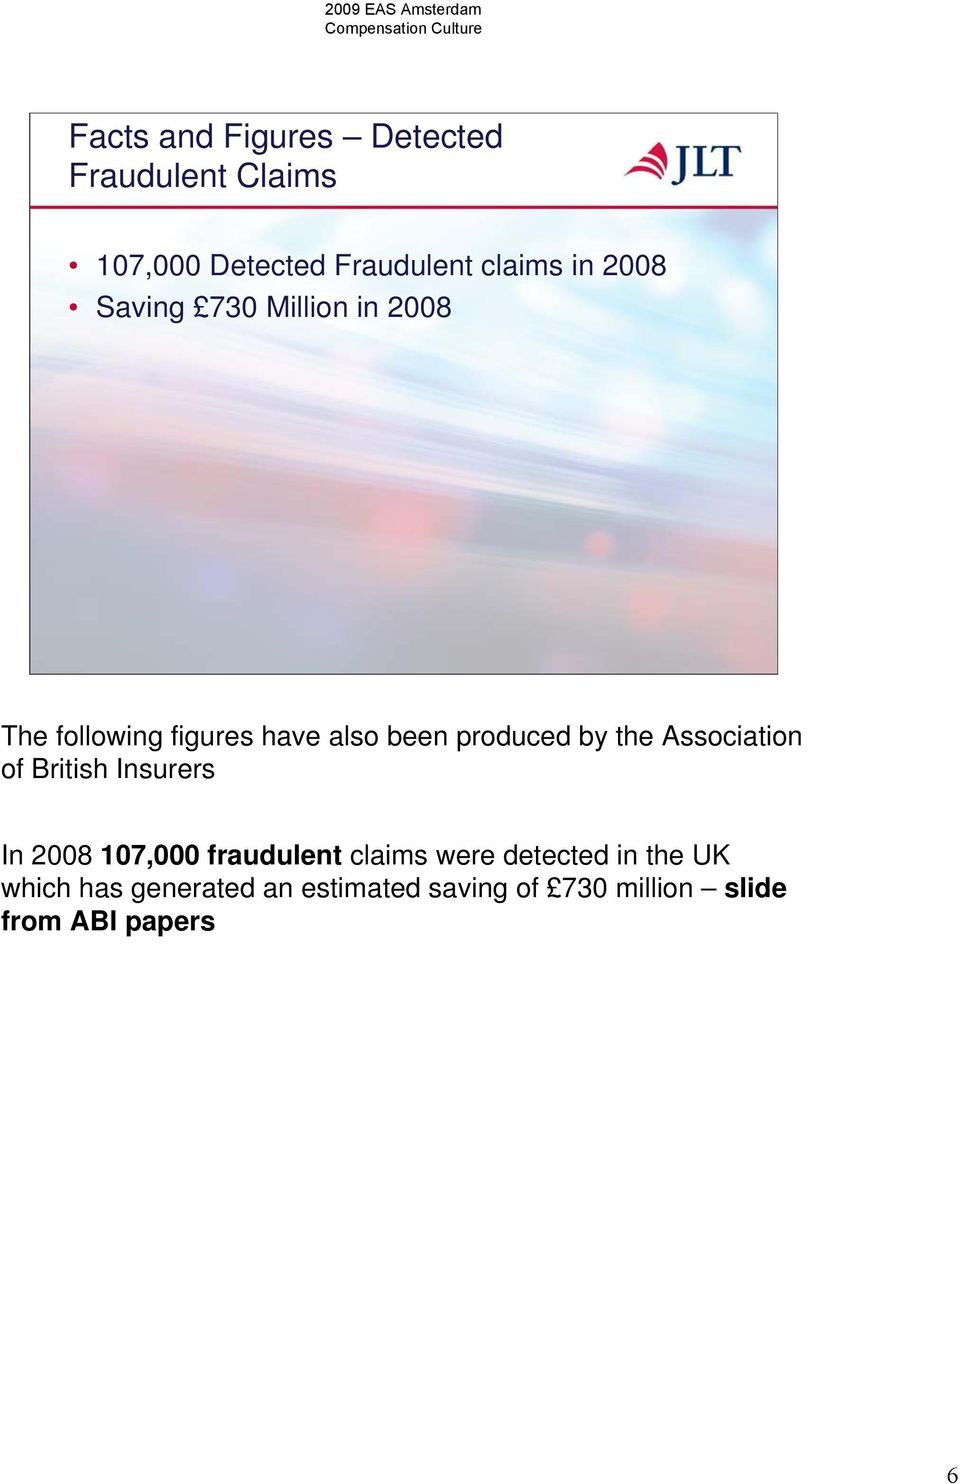 the Association of British Insurers In 2008 107,000 fraudulent claims were detected